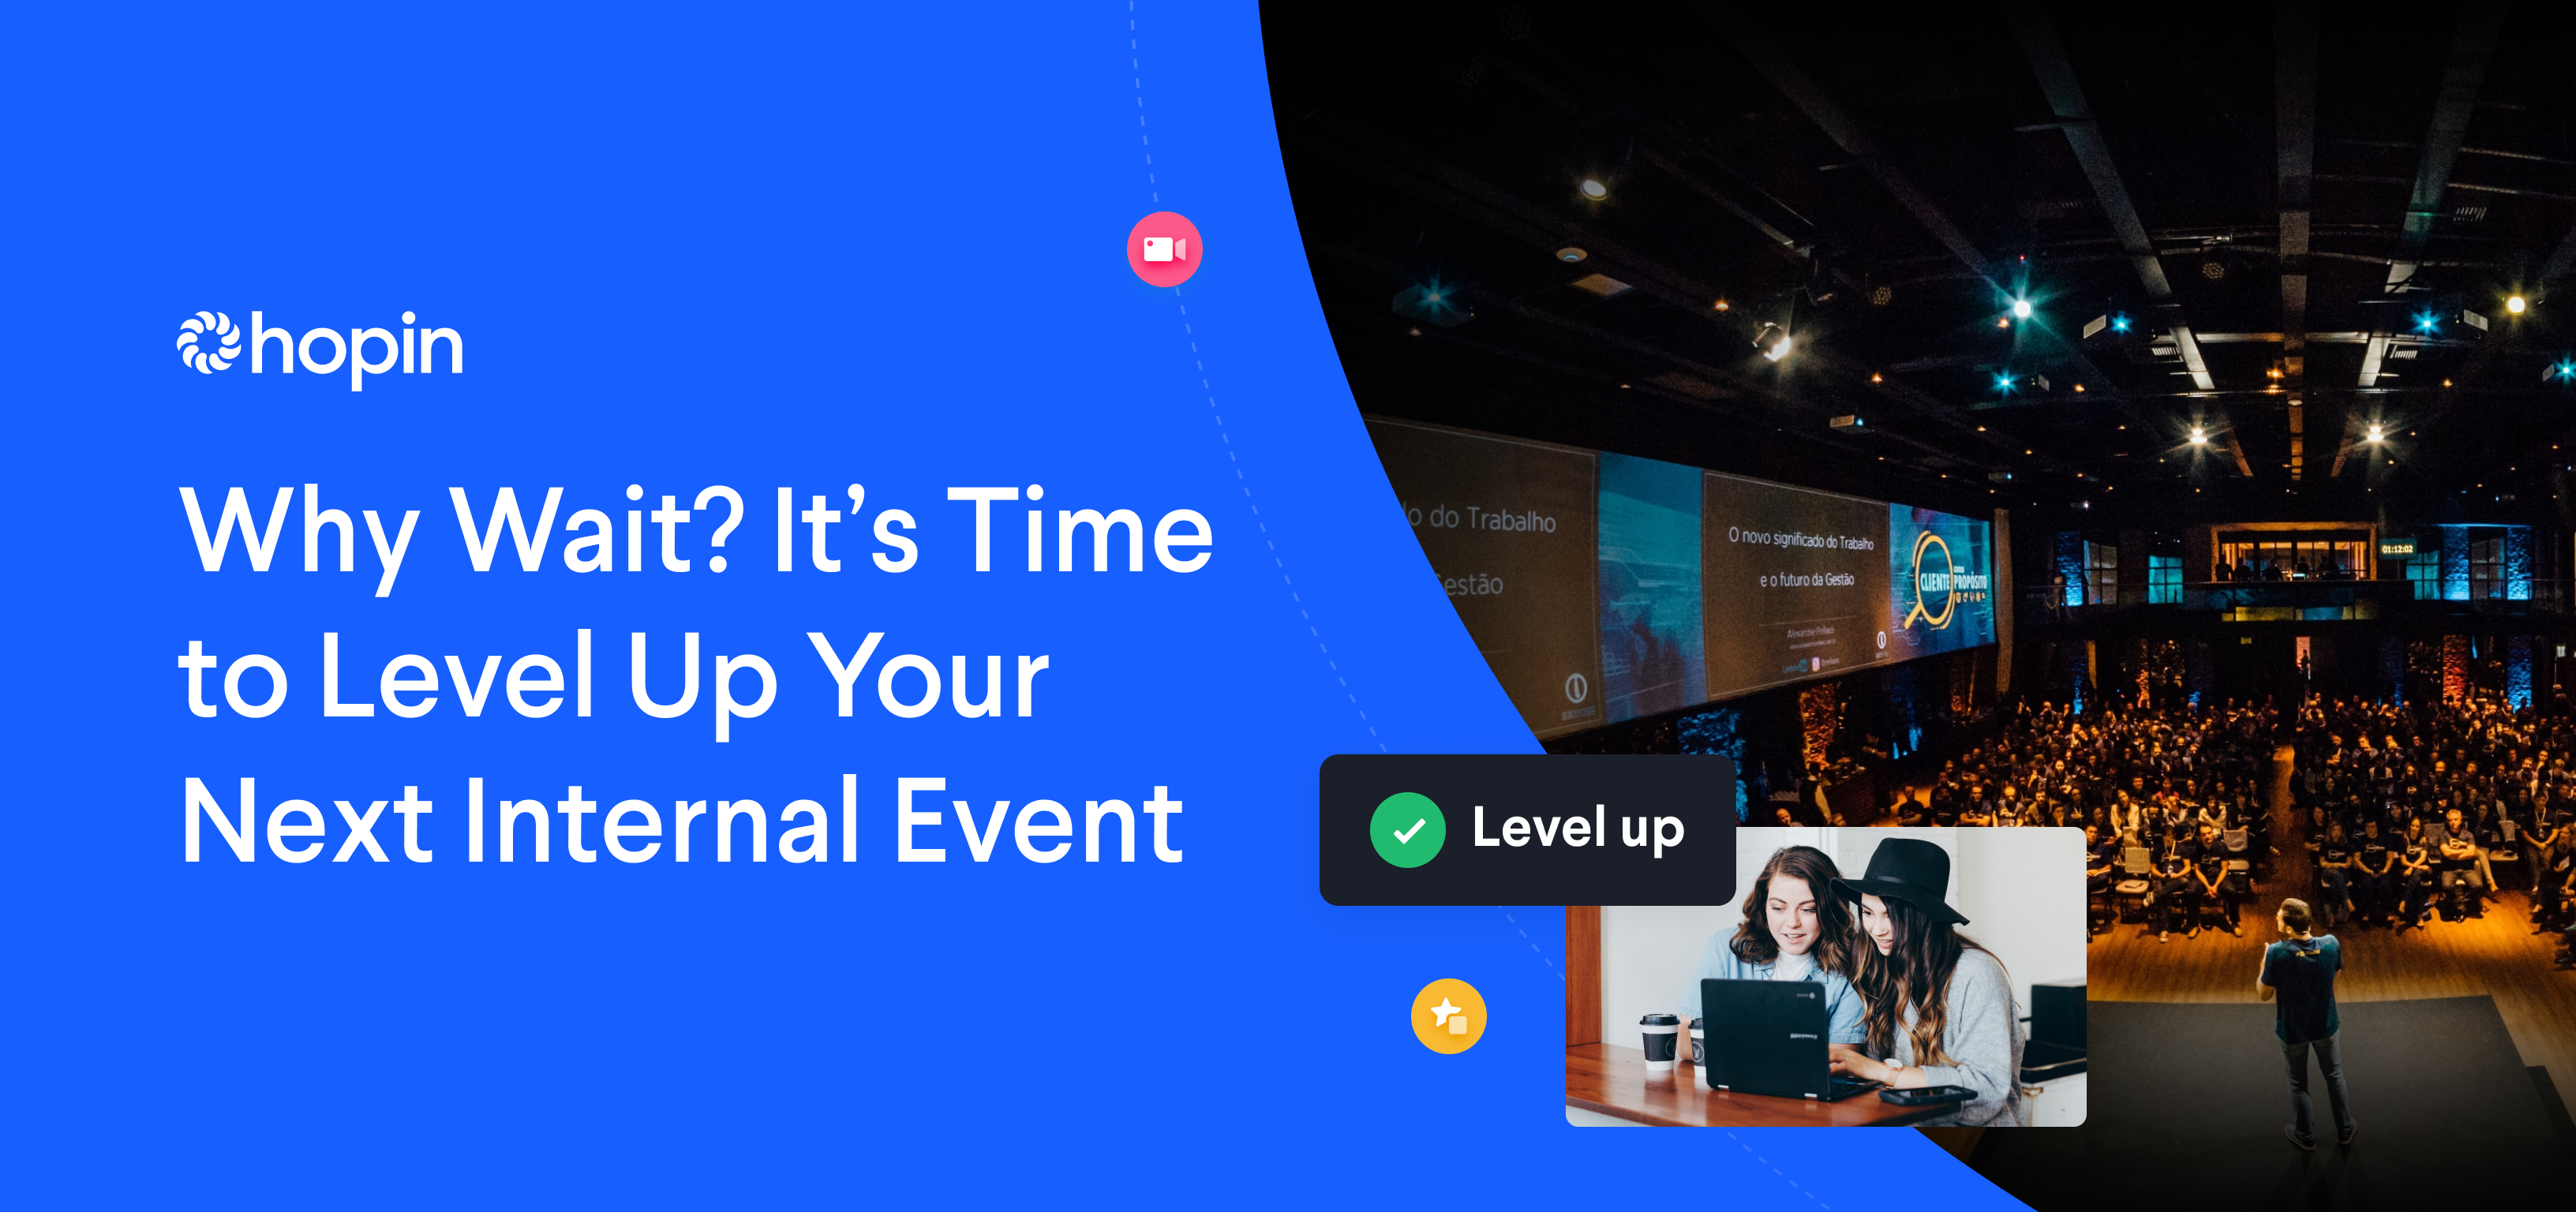 Level up your next internal event with Hopin